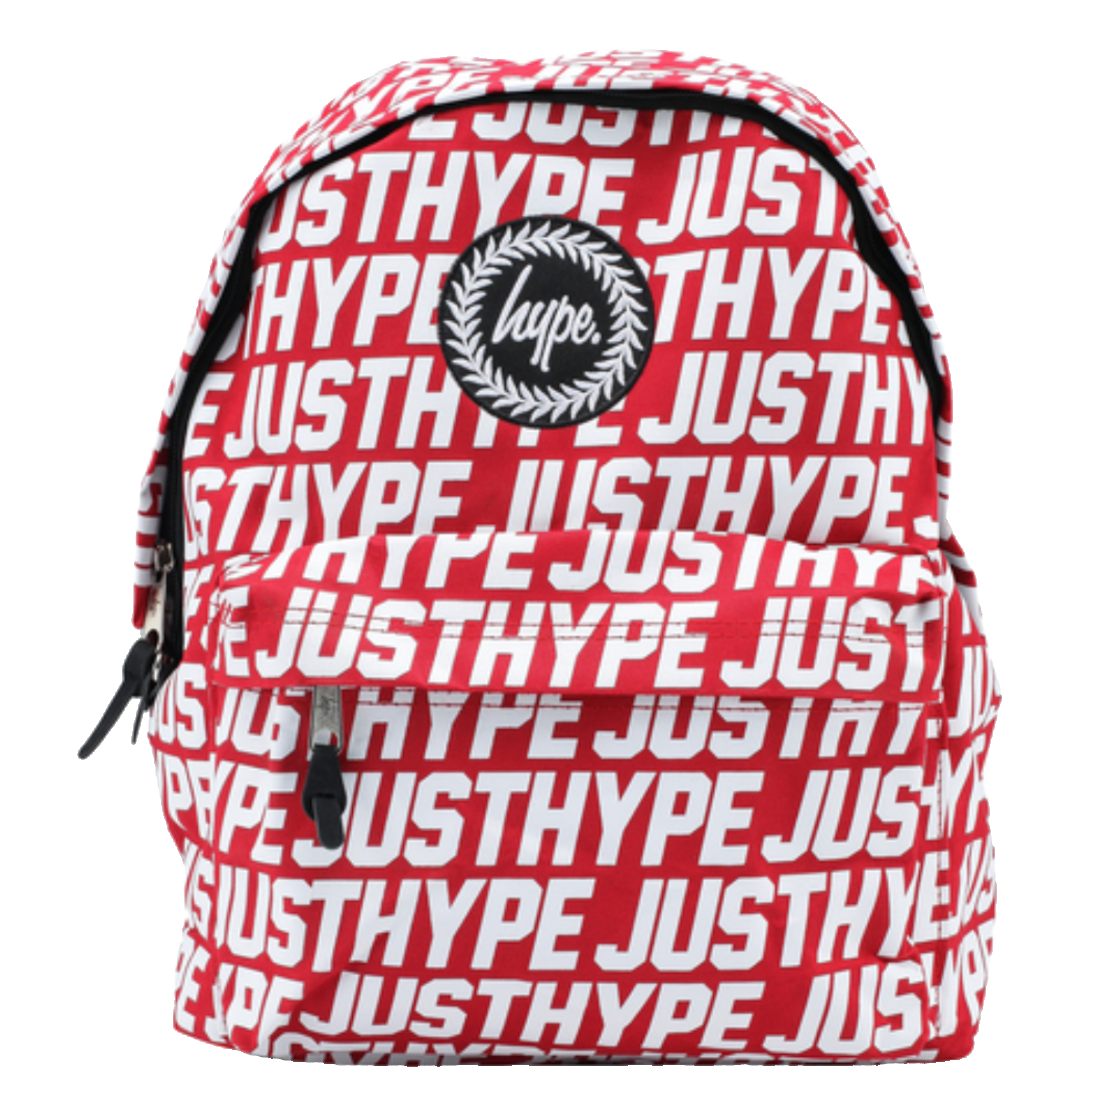 Hype - Just Hype Backpack